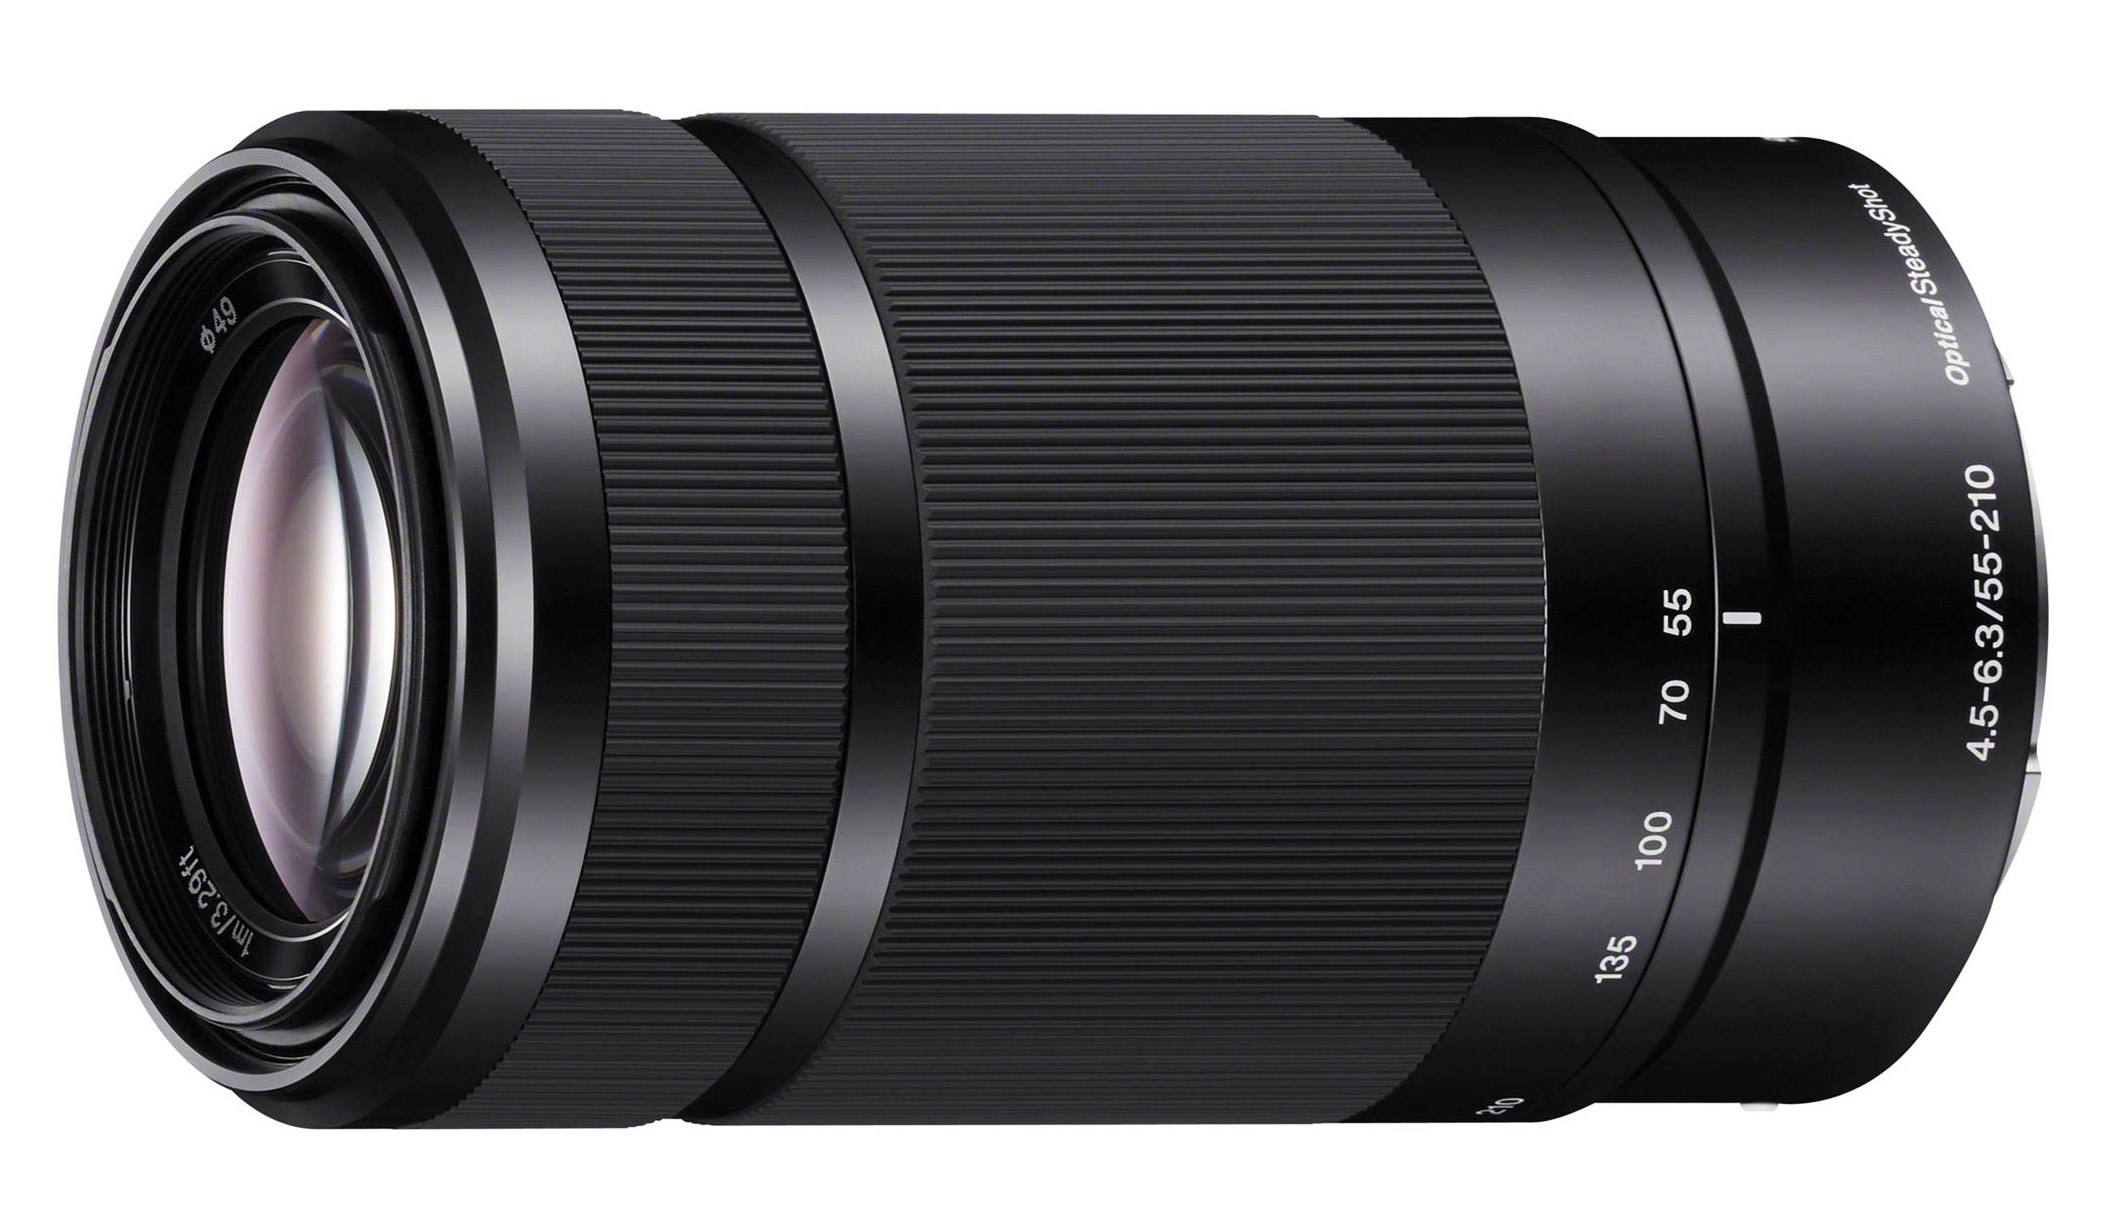 sony e 55 210mm f 4 5 6 3 oss specifications and opinions juzaphoto. Black Bedroom Furniture Sets. Home Design Ideas